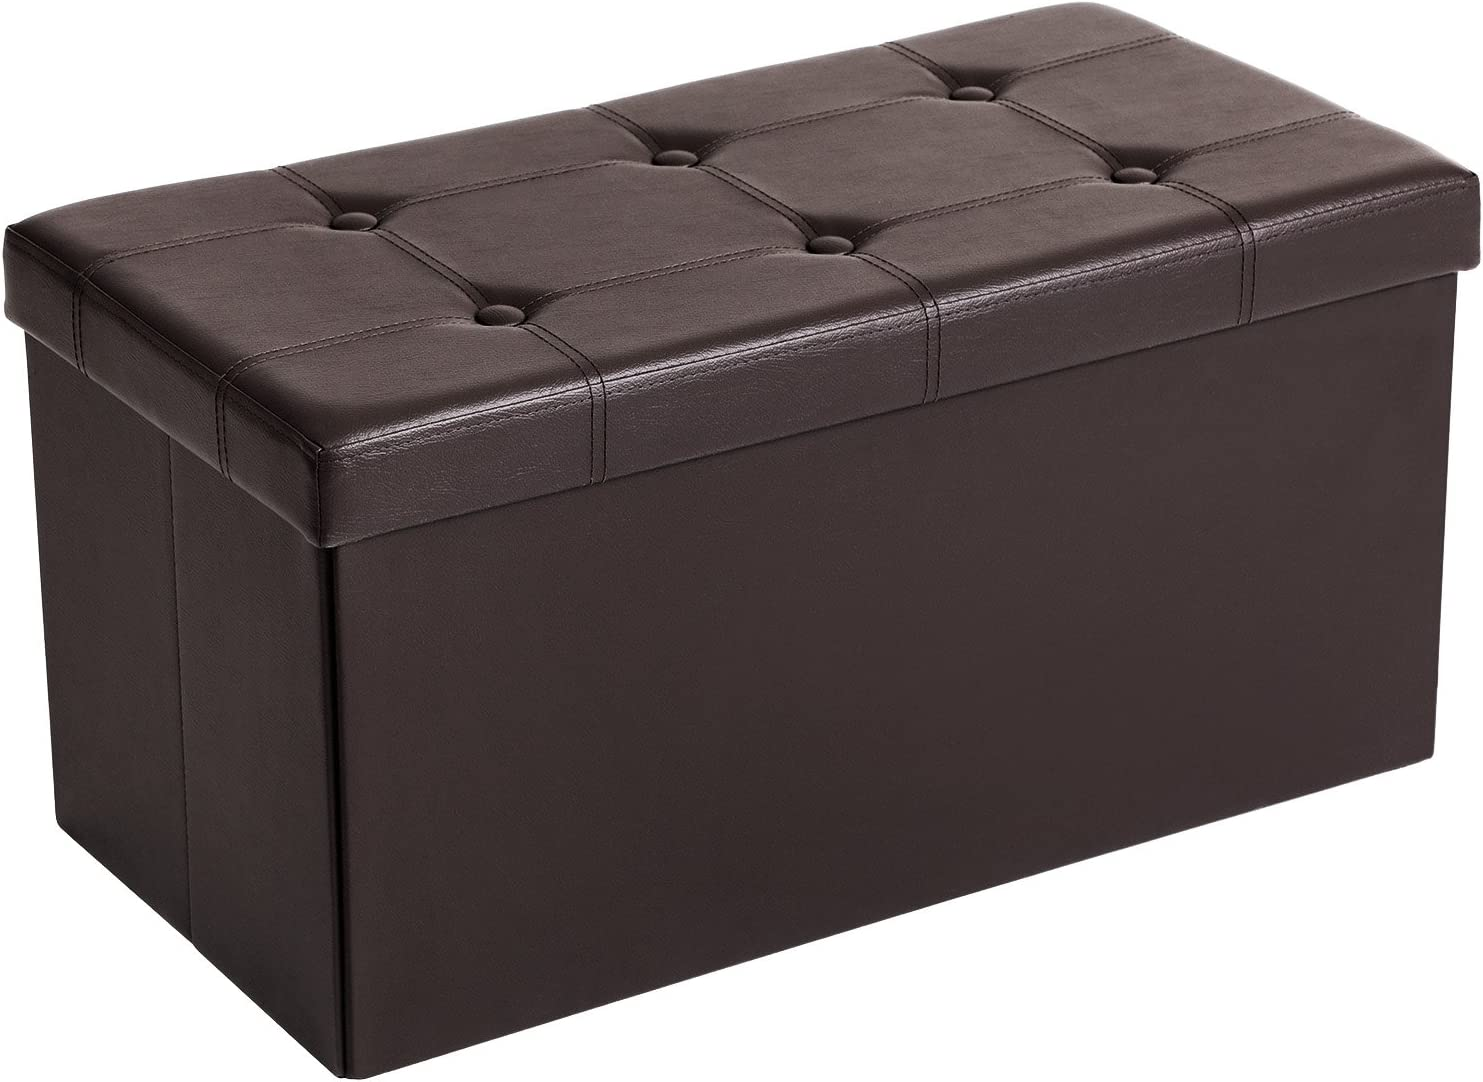 Recommendation SONGMICS 30 Inches Attention brand Faux Leather S Ottoman Storage Bench Folding